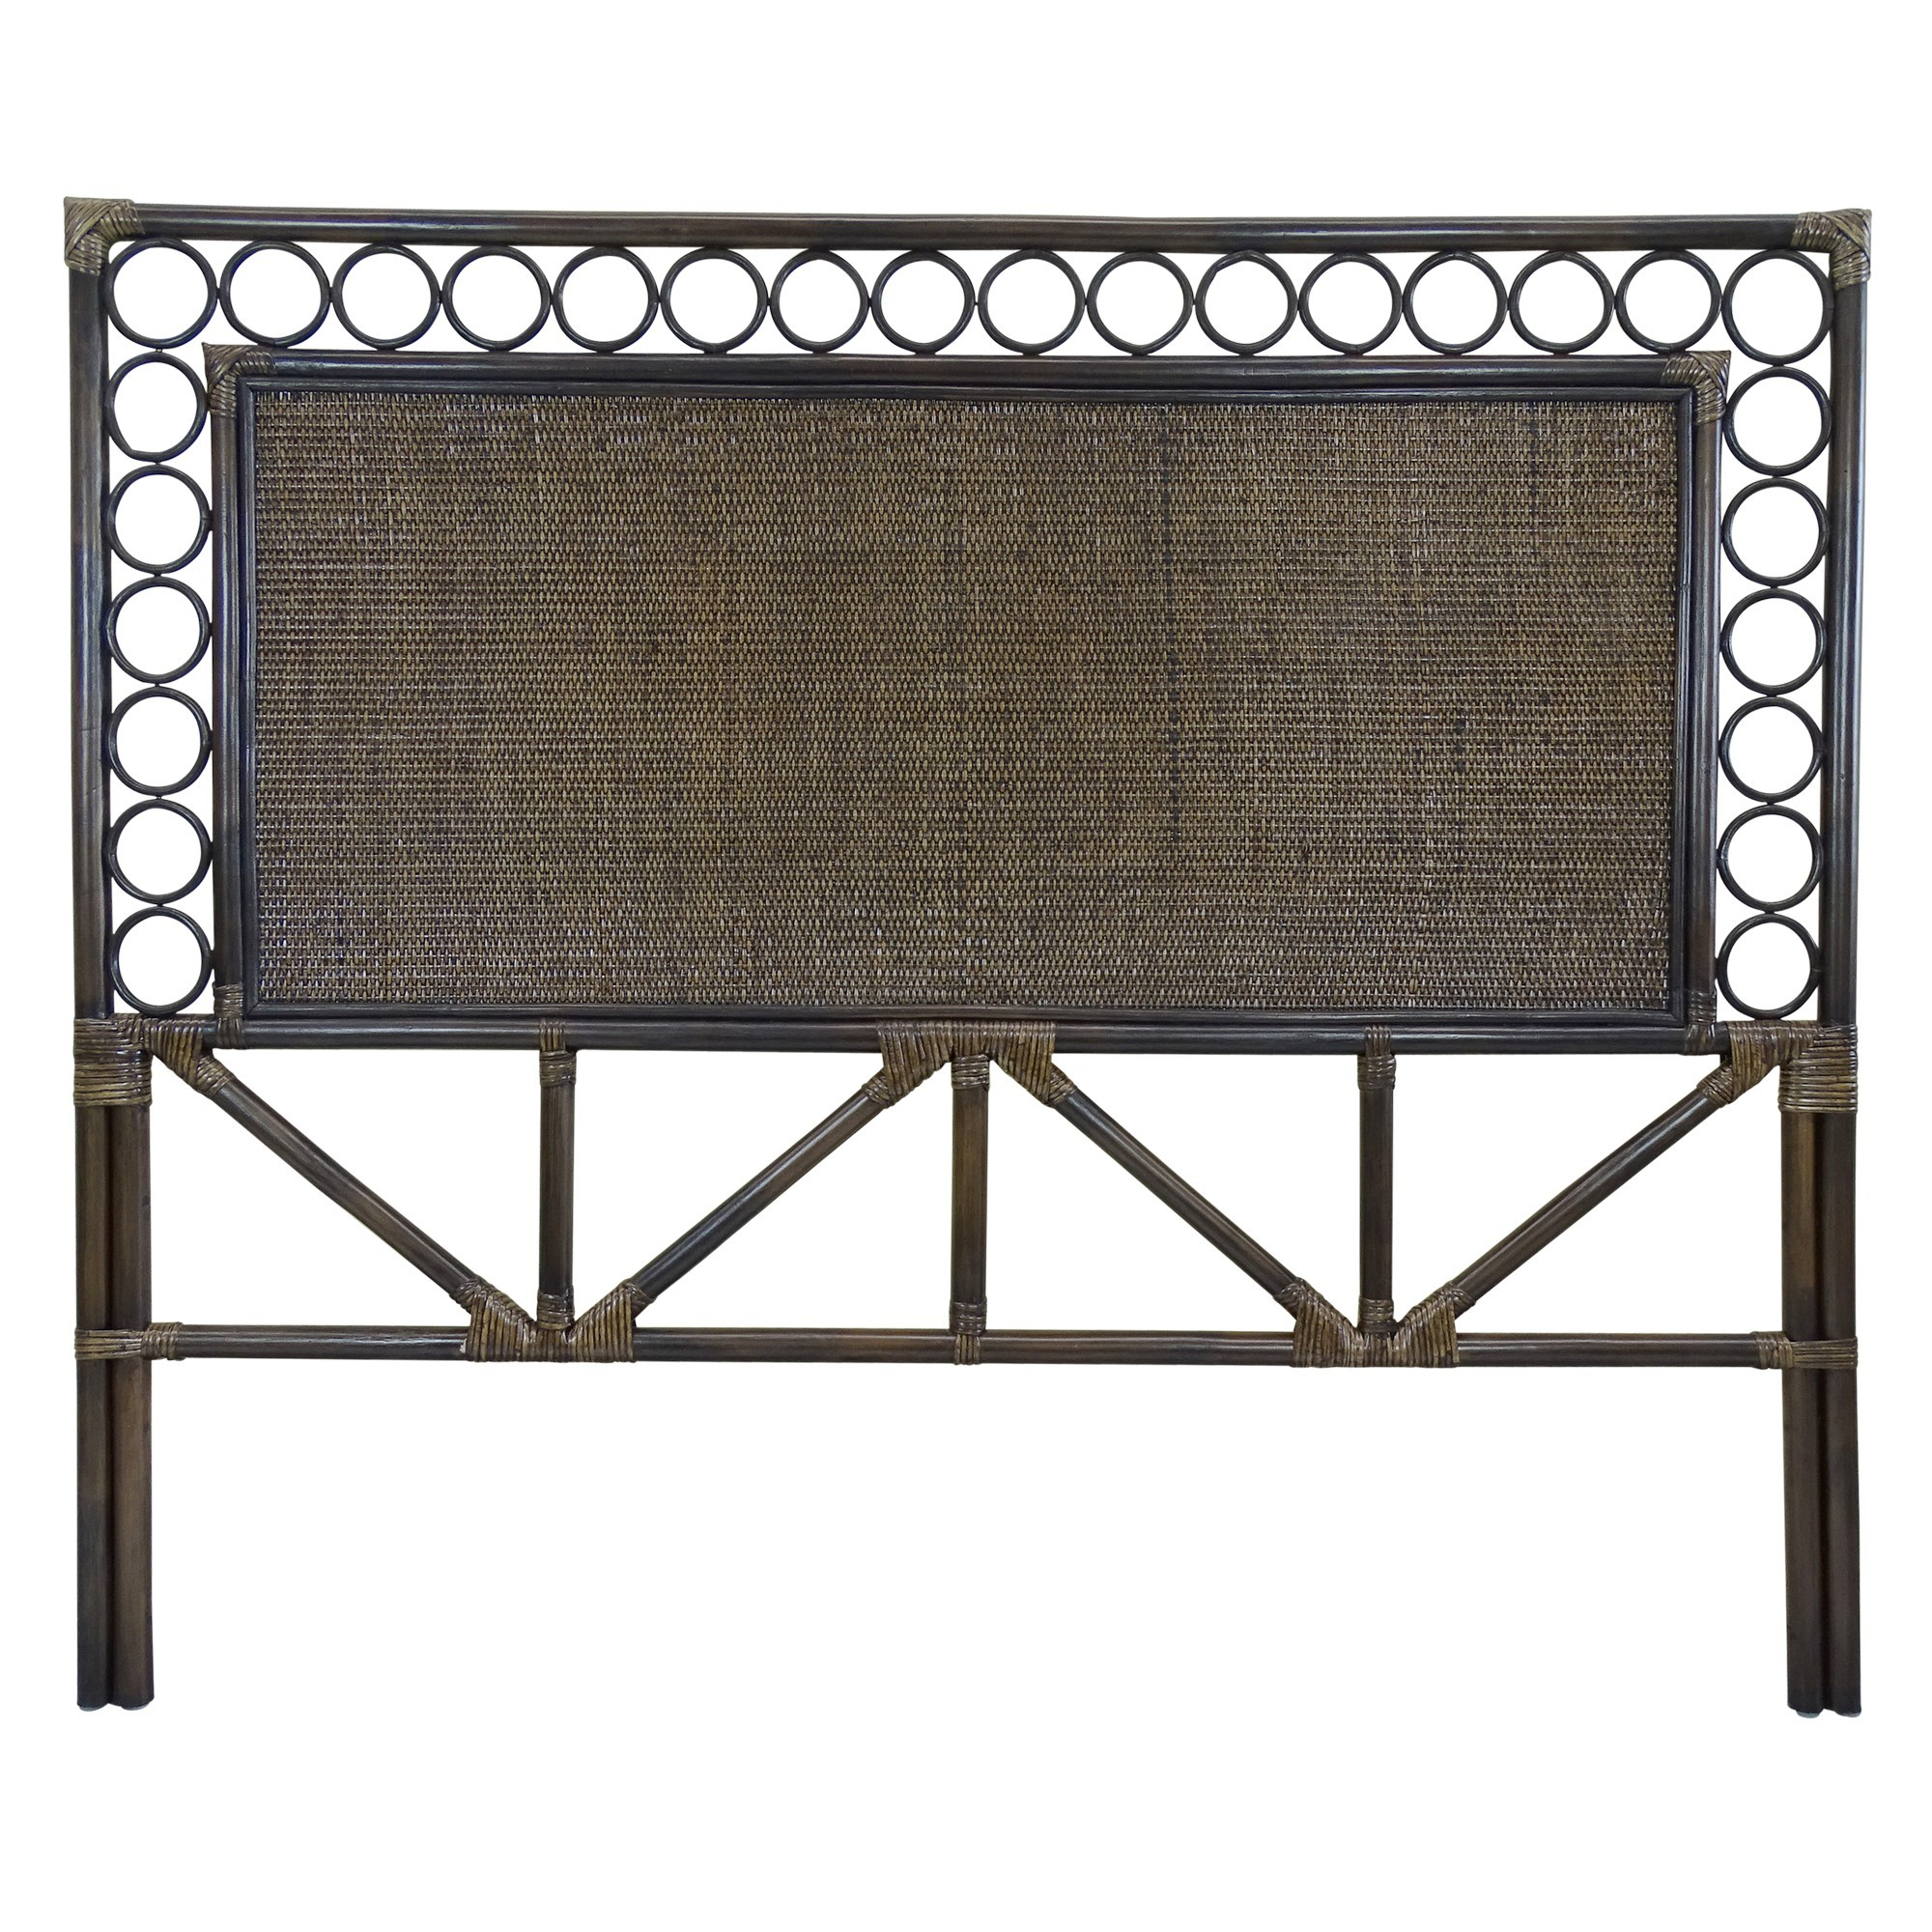 Zoie Bamboo Rattan Bed Headboard, Queen, Cigar